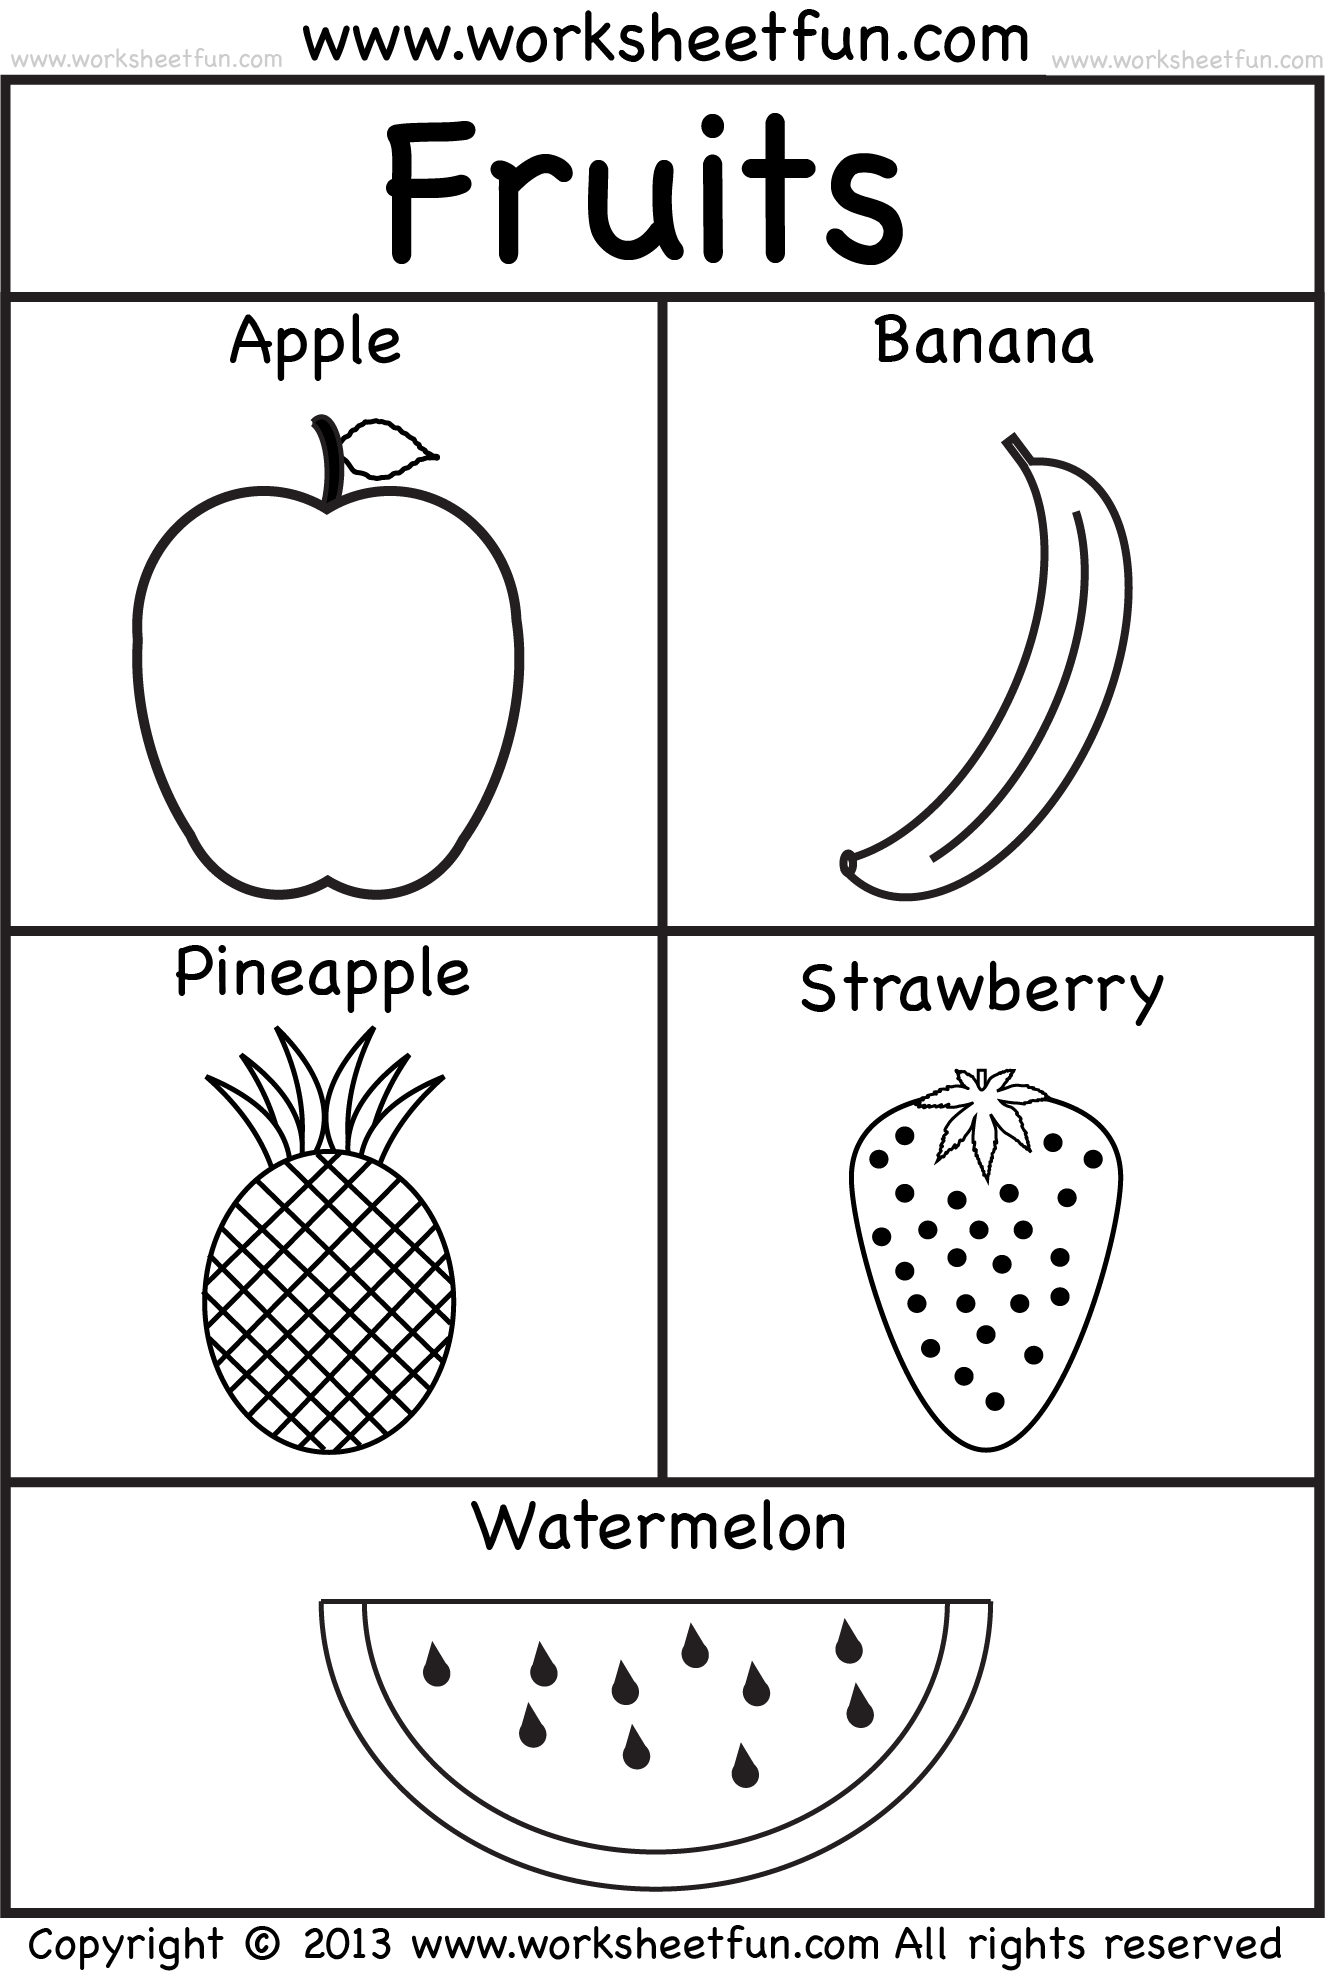 Fruits Coloring And Tracing 4 Preschool Worksheets Free Printable Worksheets Worksheetfun